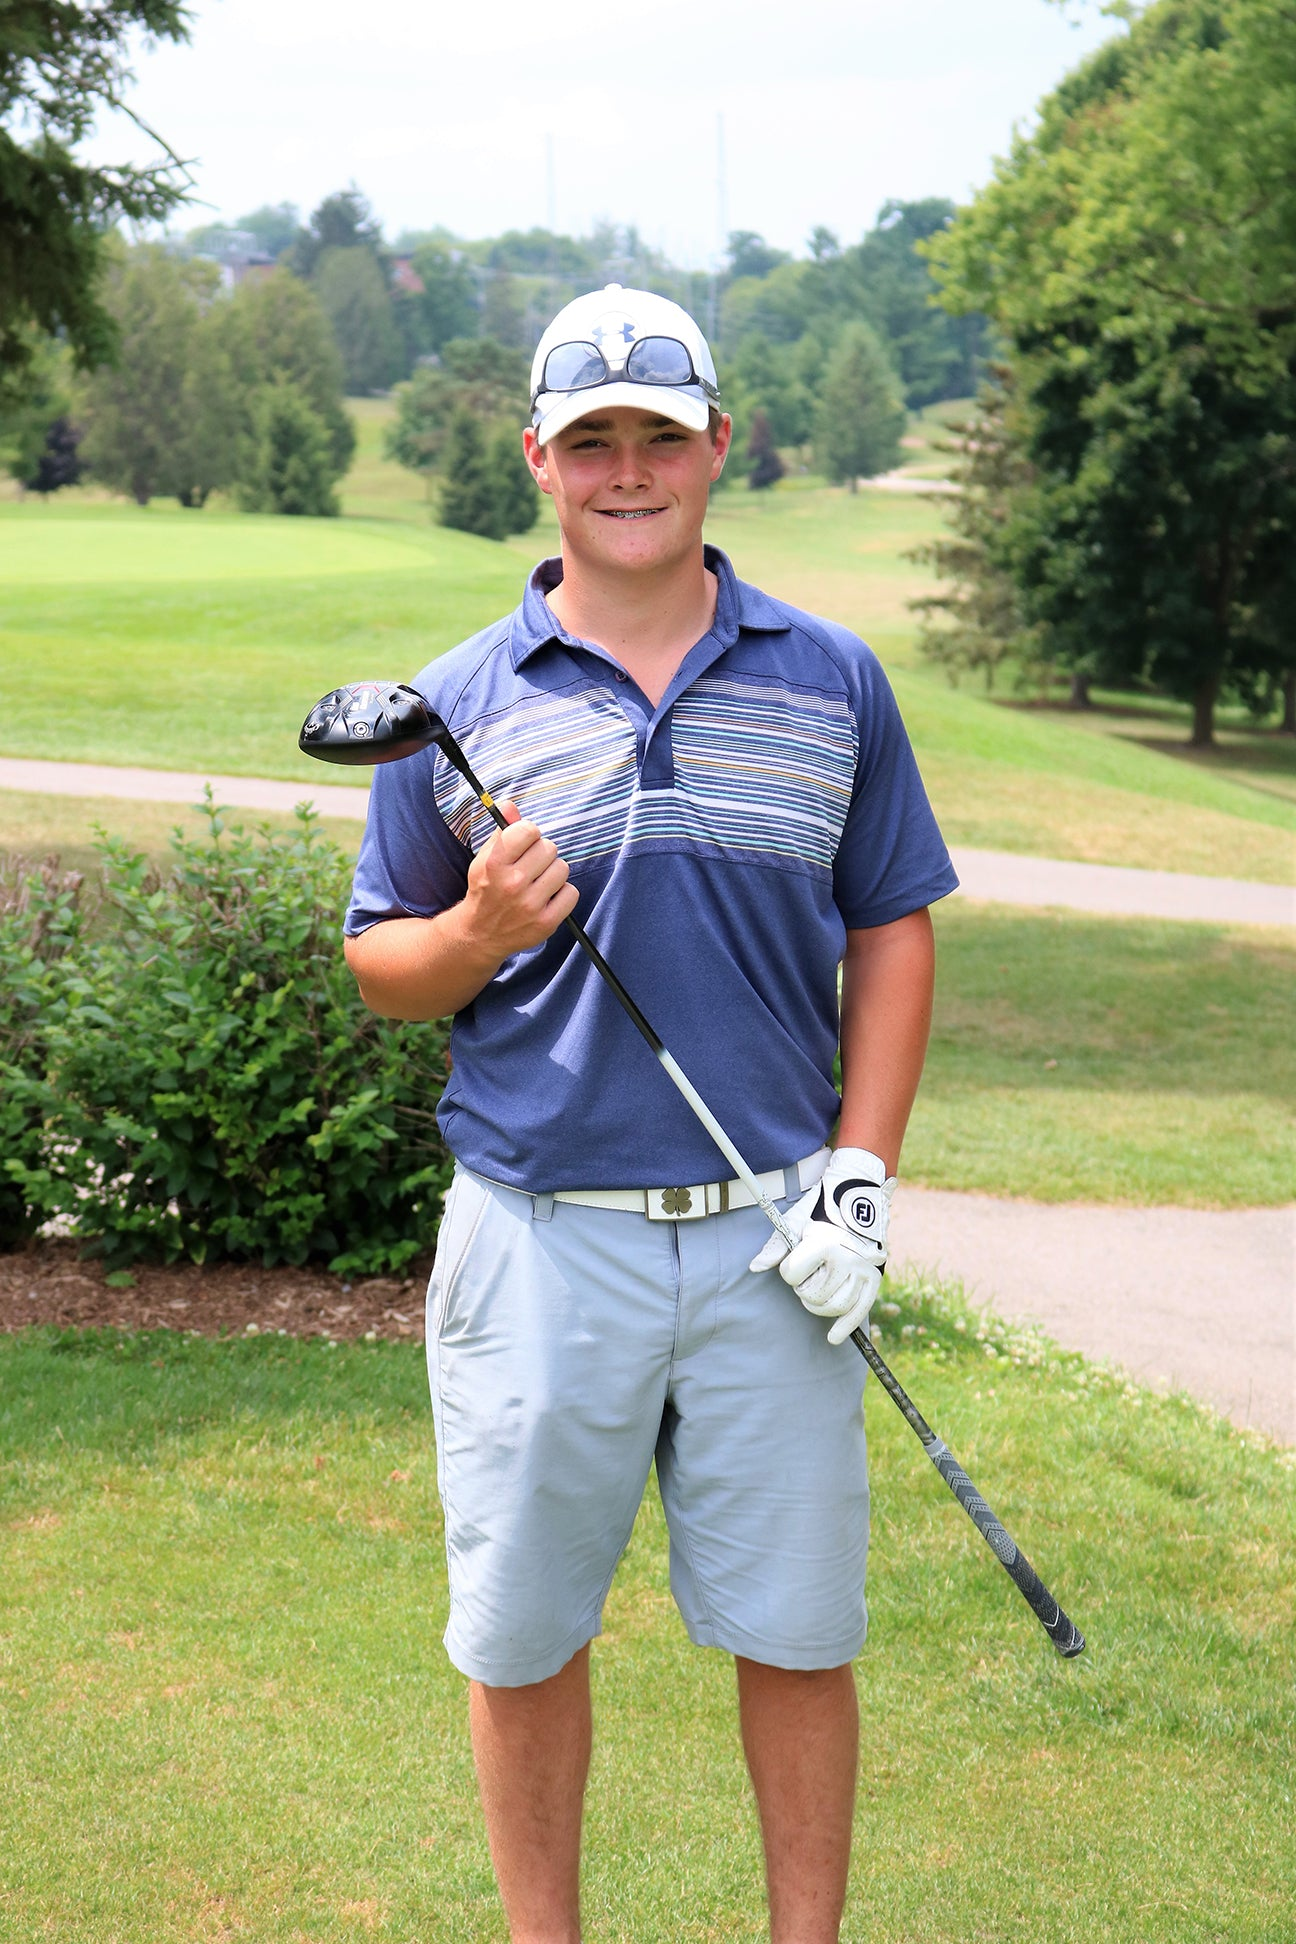 Club Junior Golfer Plays PGA National in Florida